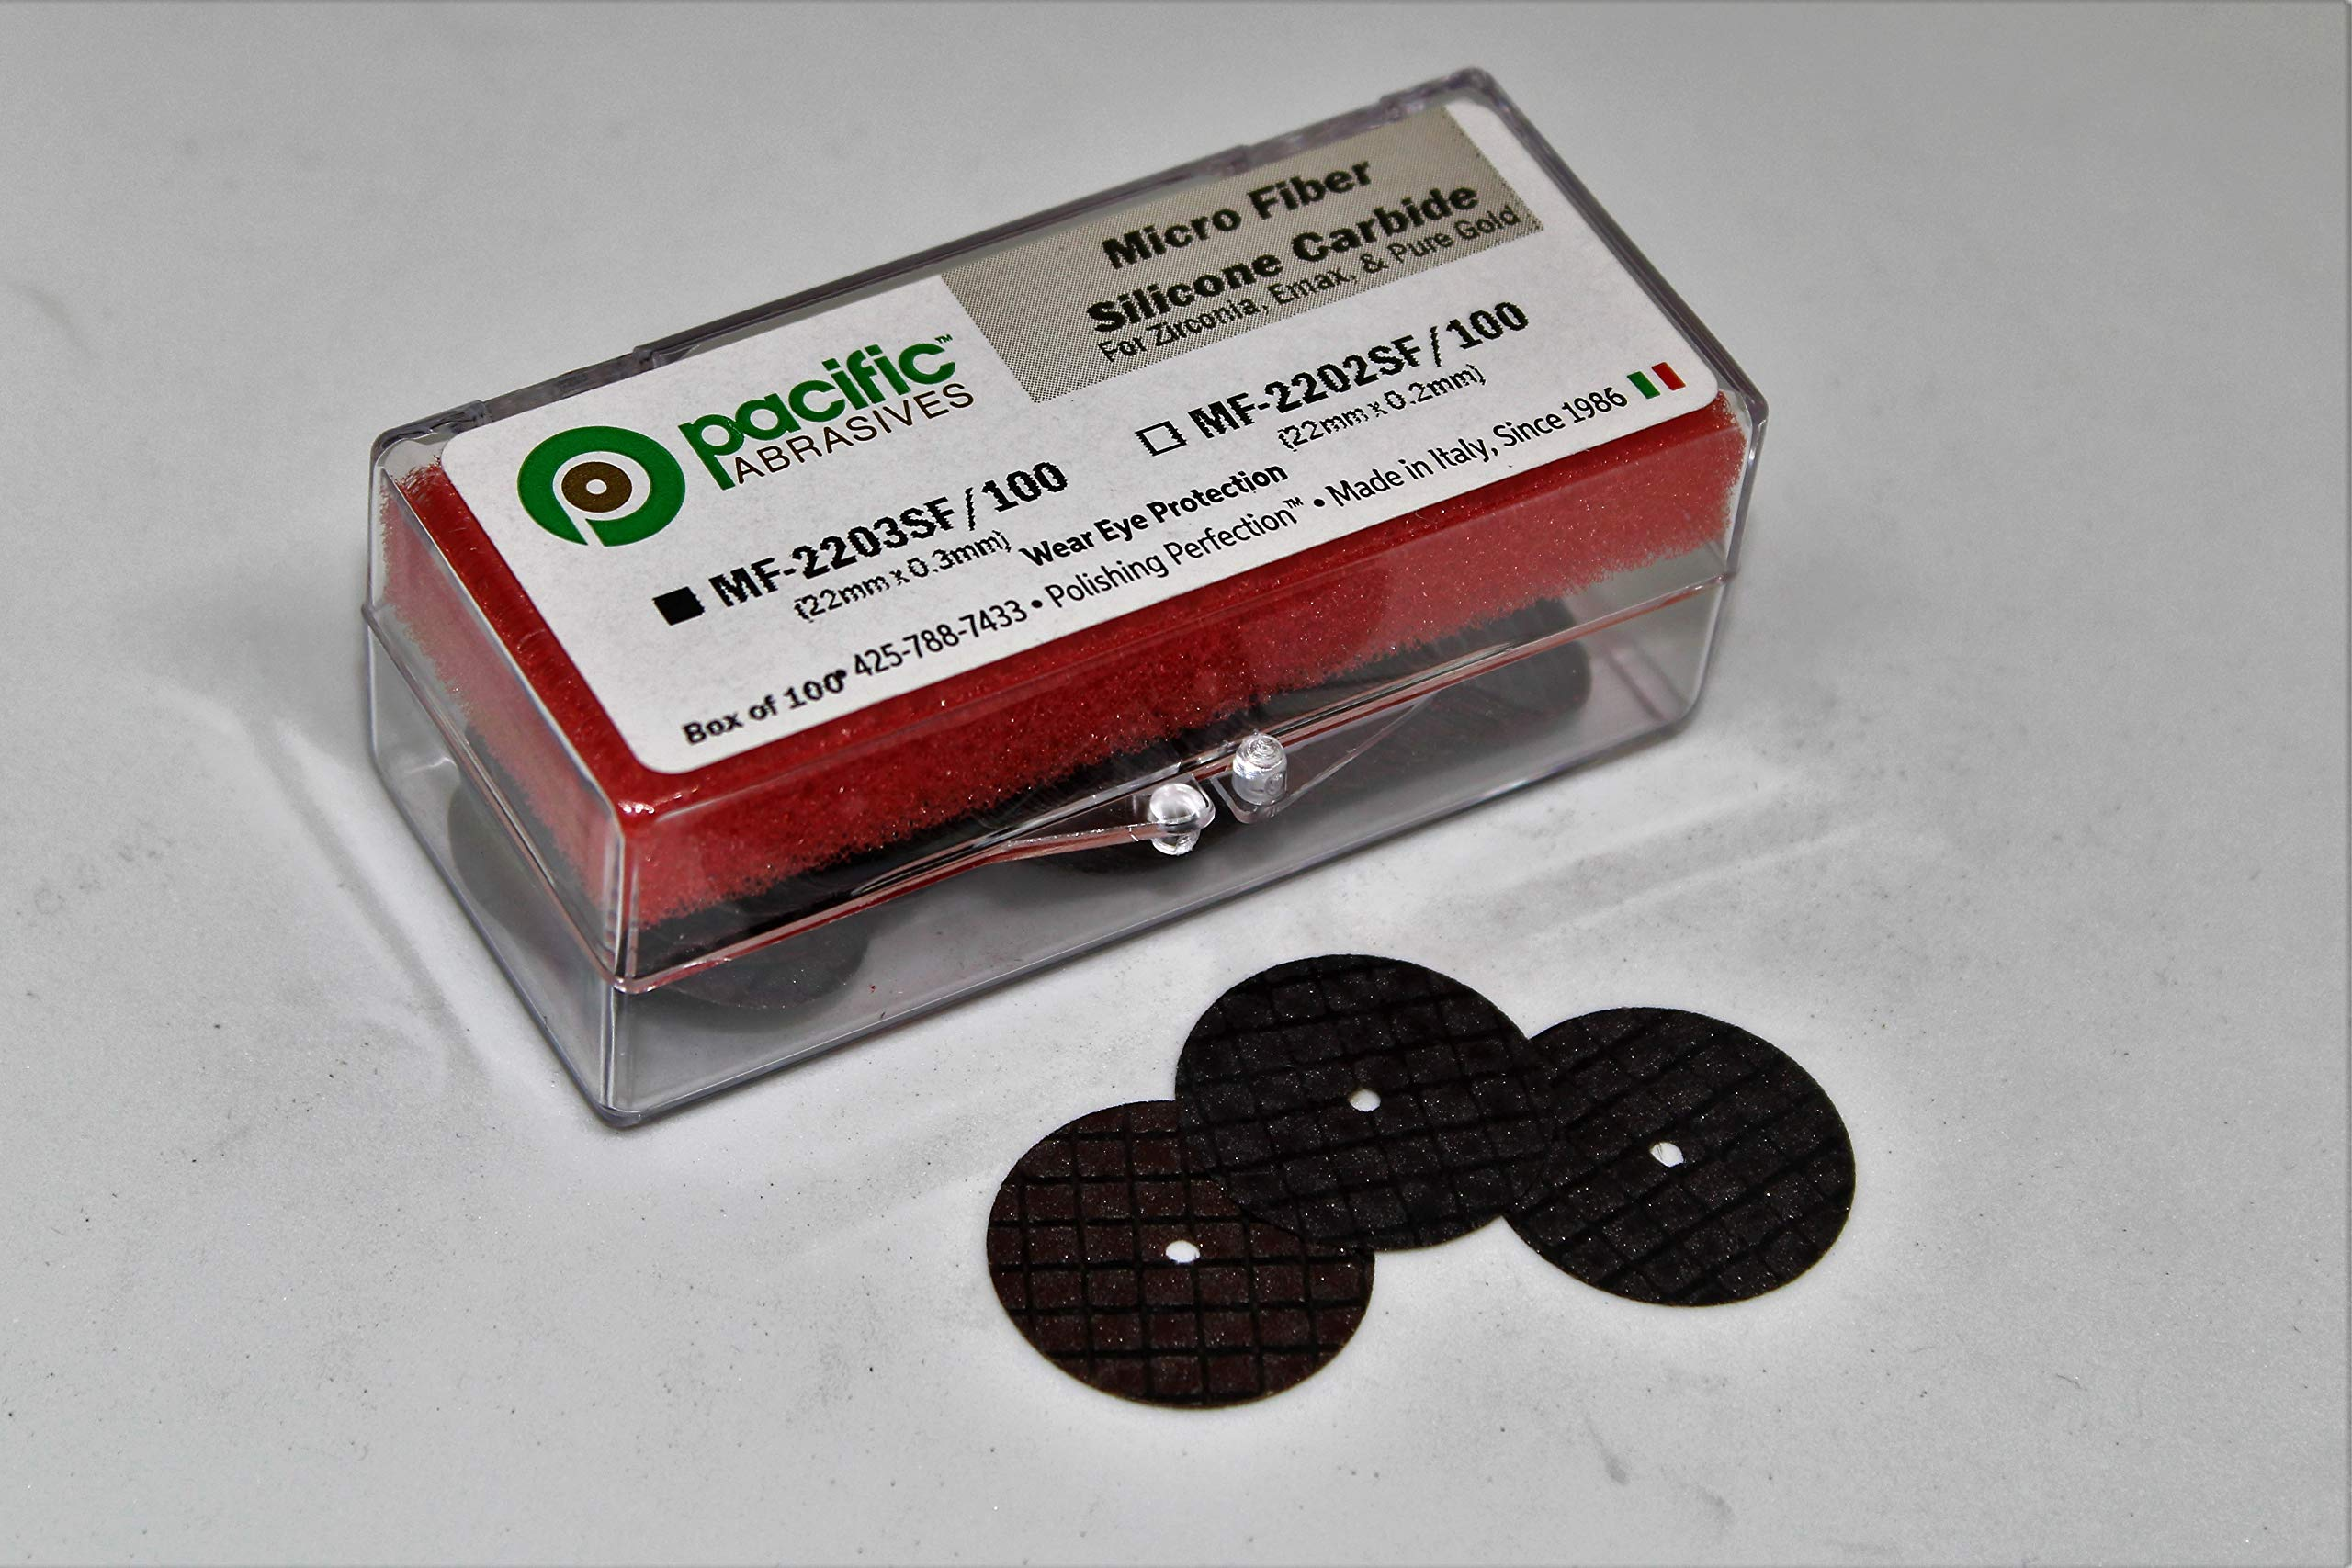 Pacific Abrasives Micro Fiber Separating Disc Silicon Carbide for Cutting Porcelain, Zirconia, and Pure Gold. (Pack 0f 100)